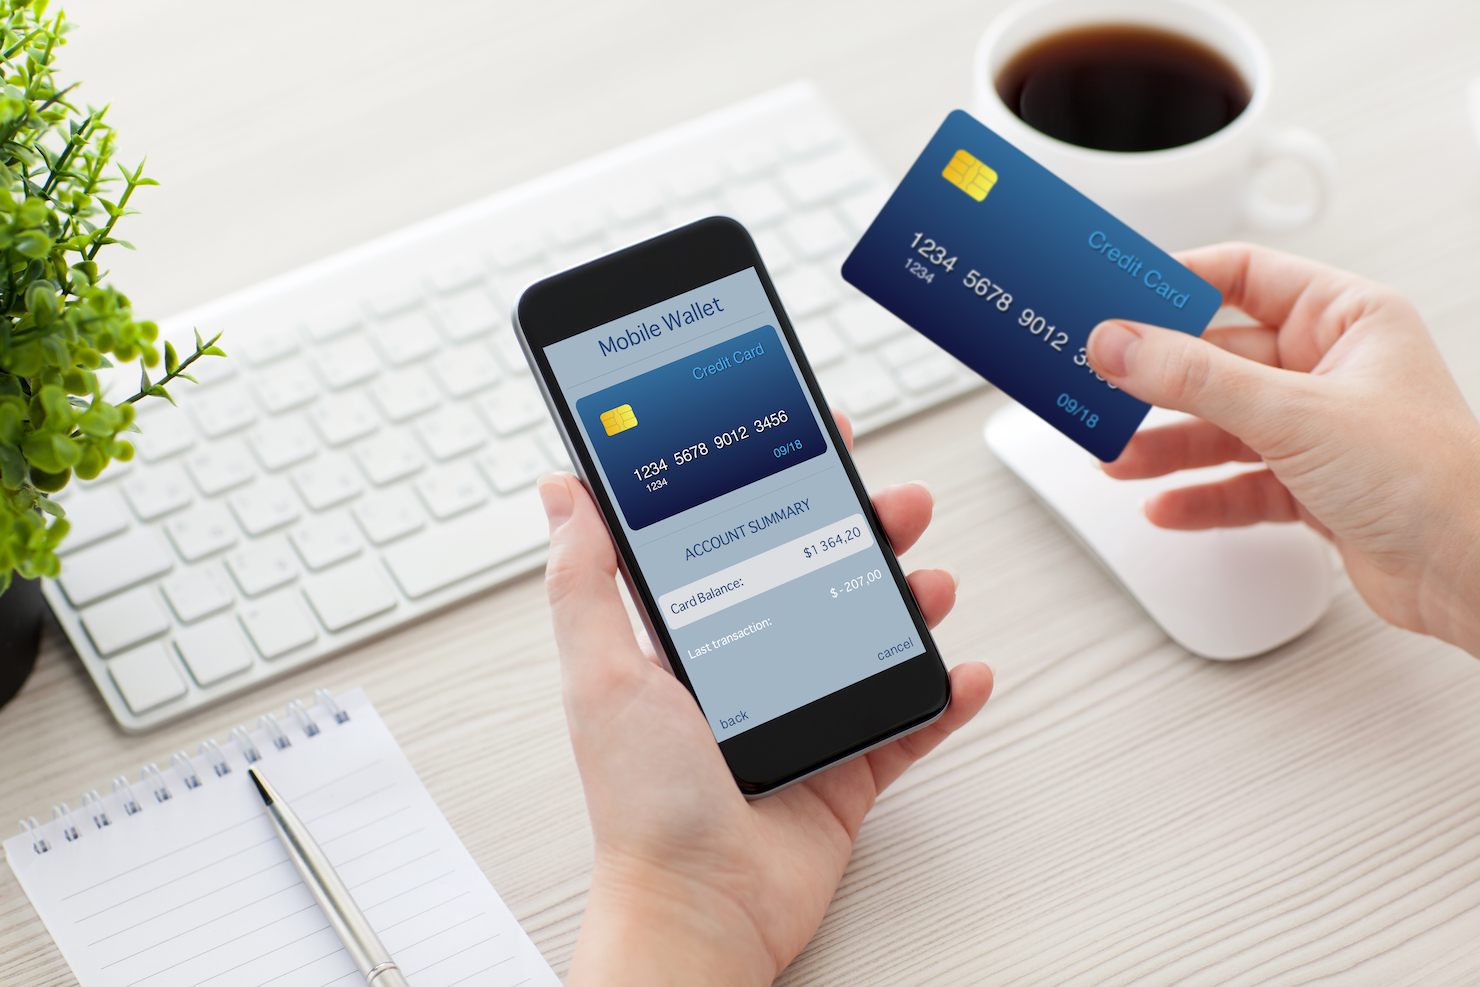 Mobile payments personal finance money stock image